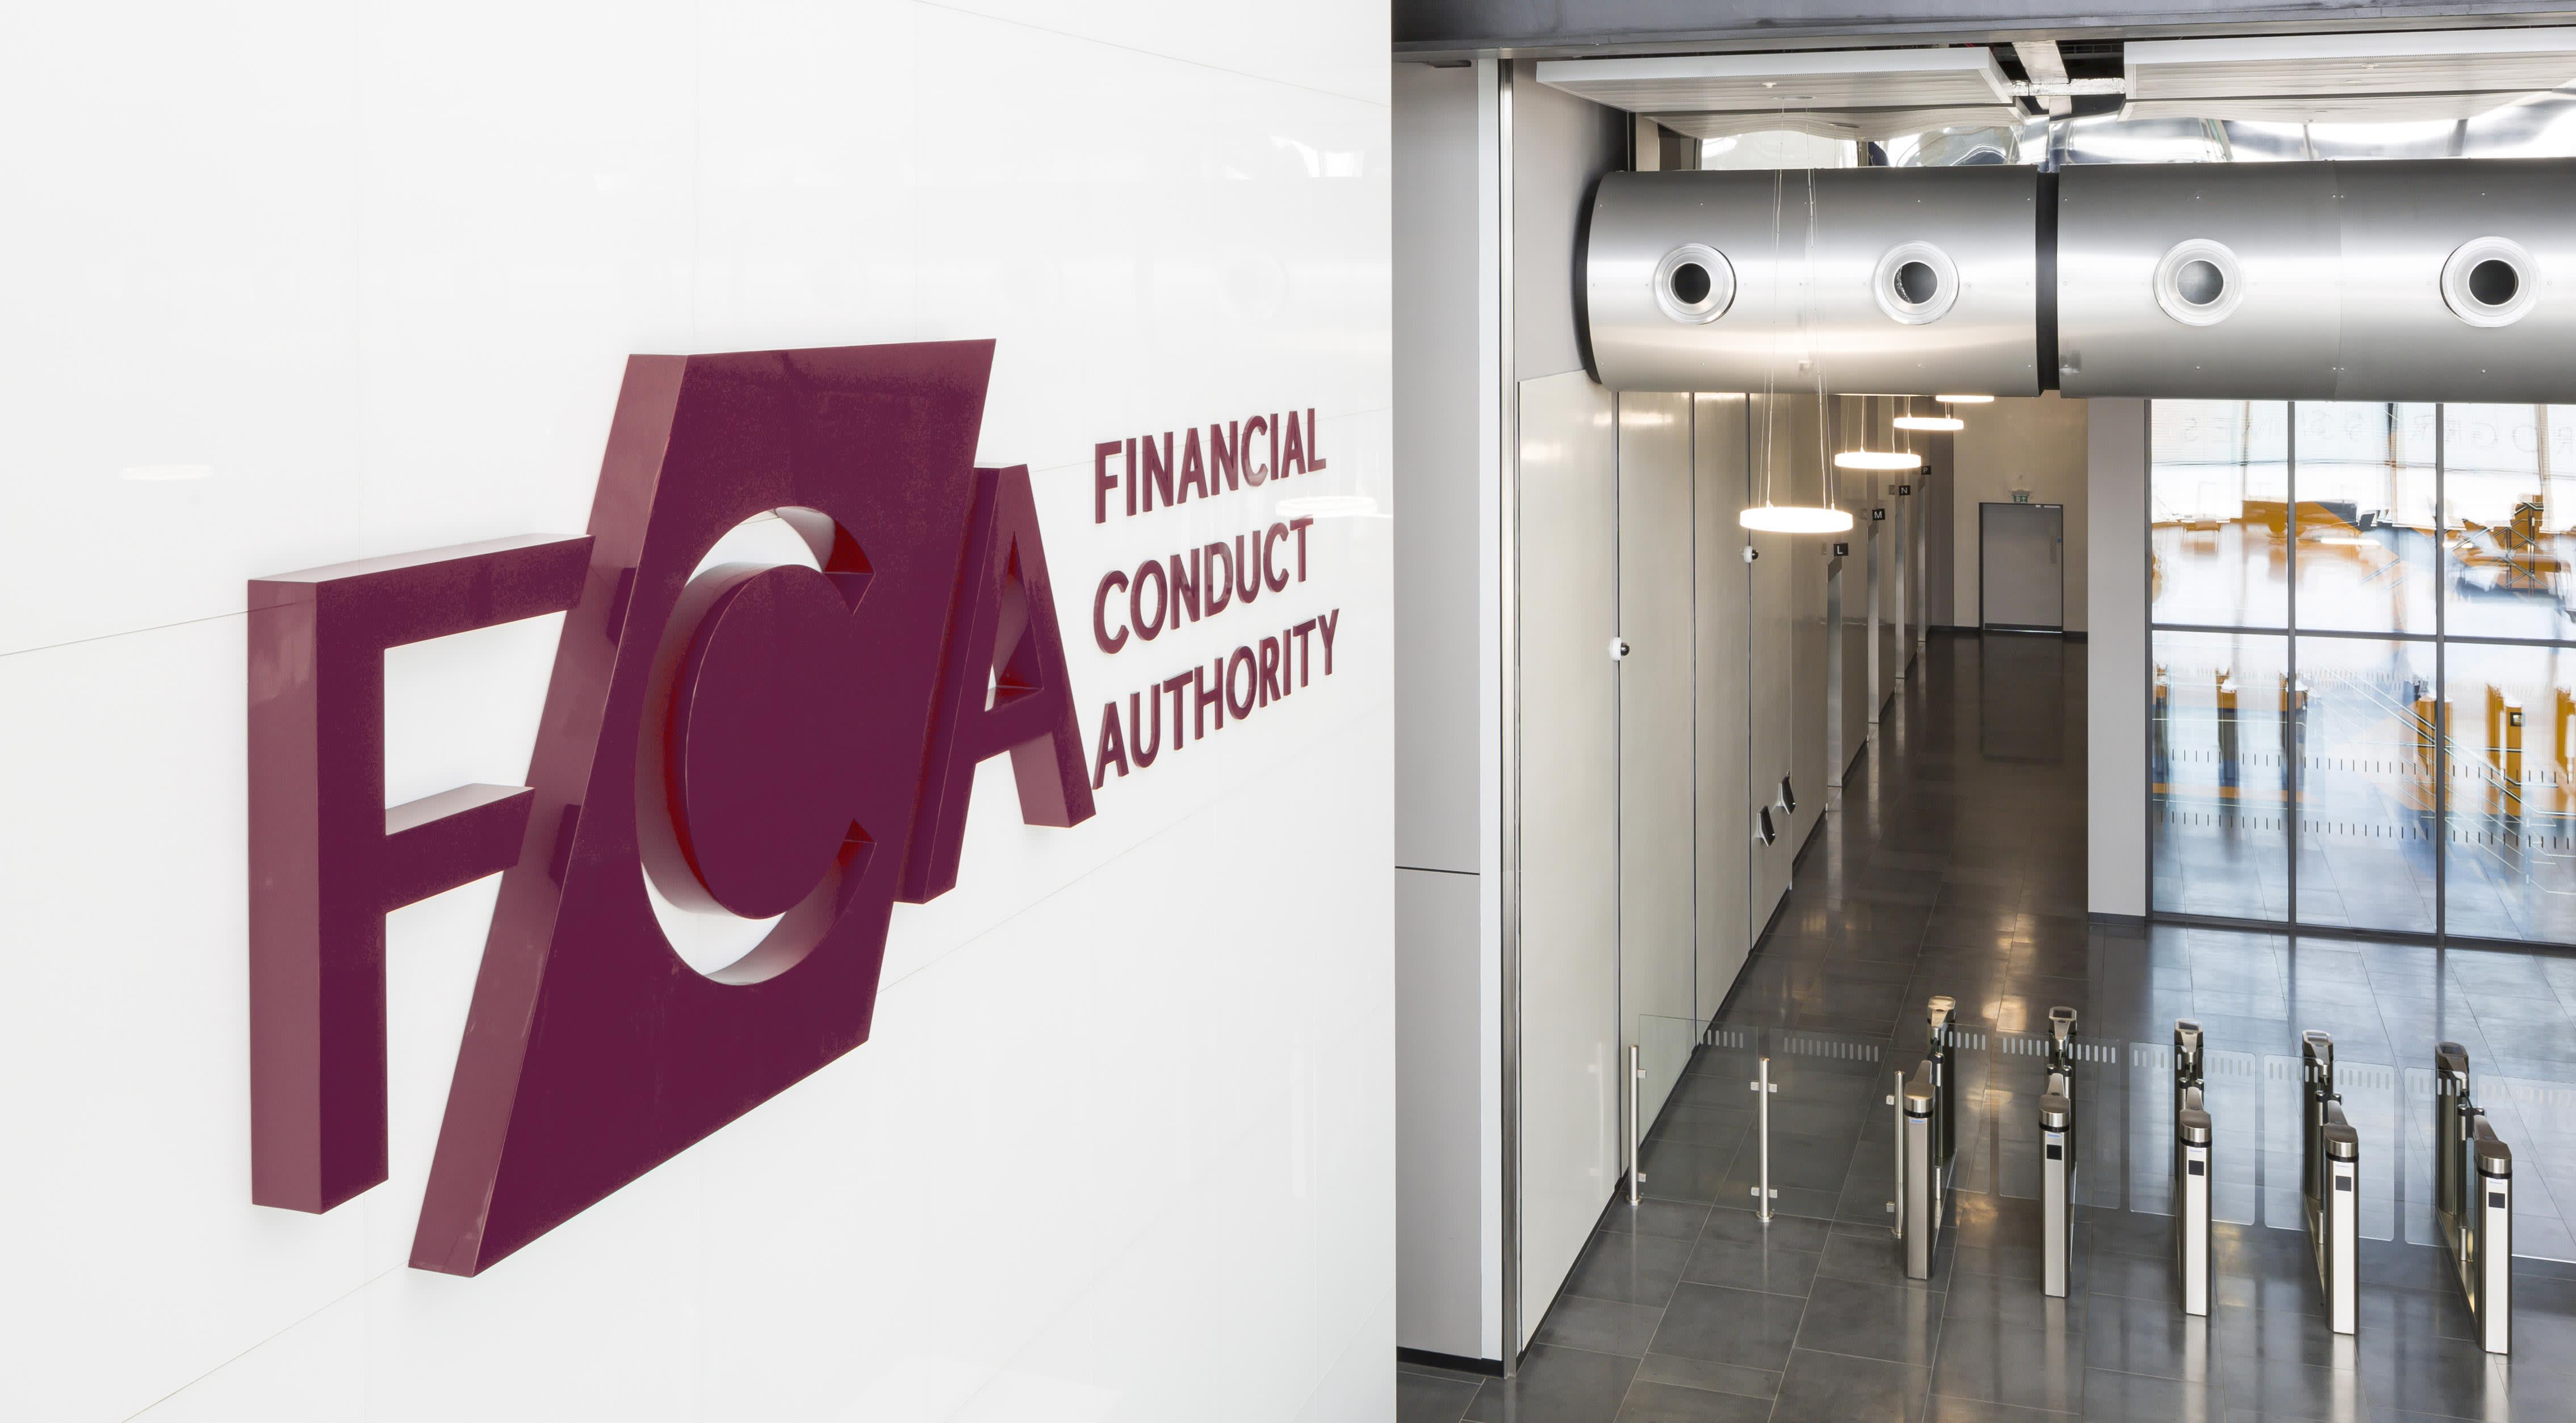 FCA asks firms to not settle DB claims until guidance updated